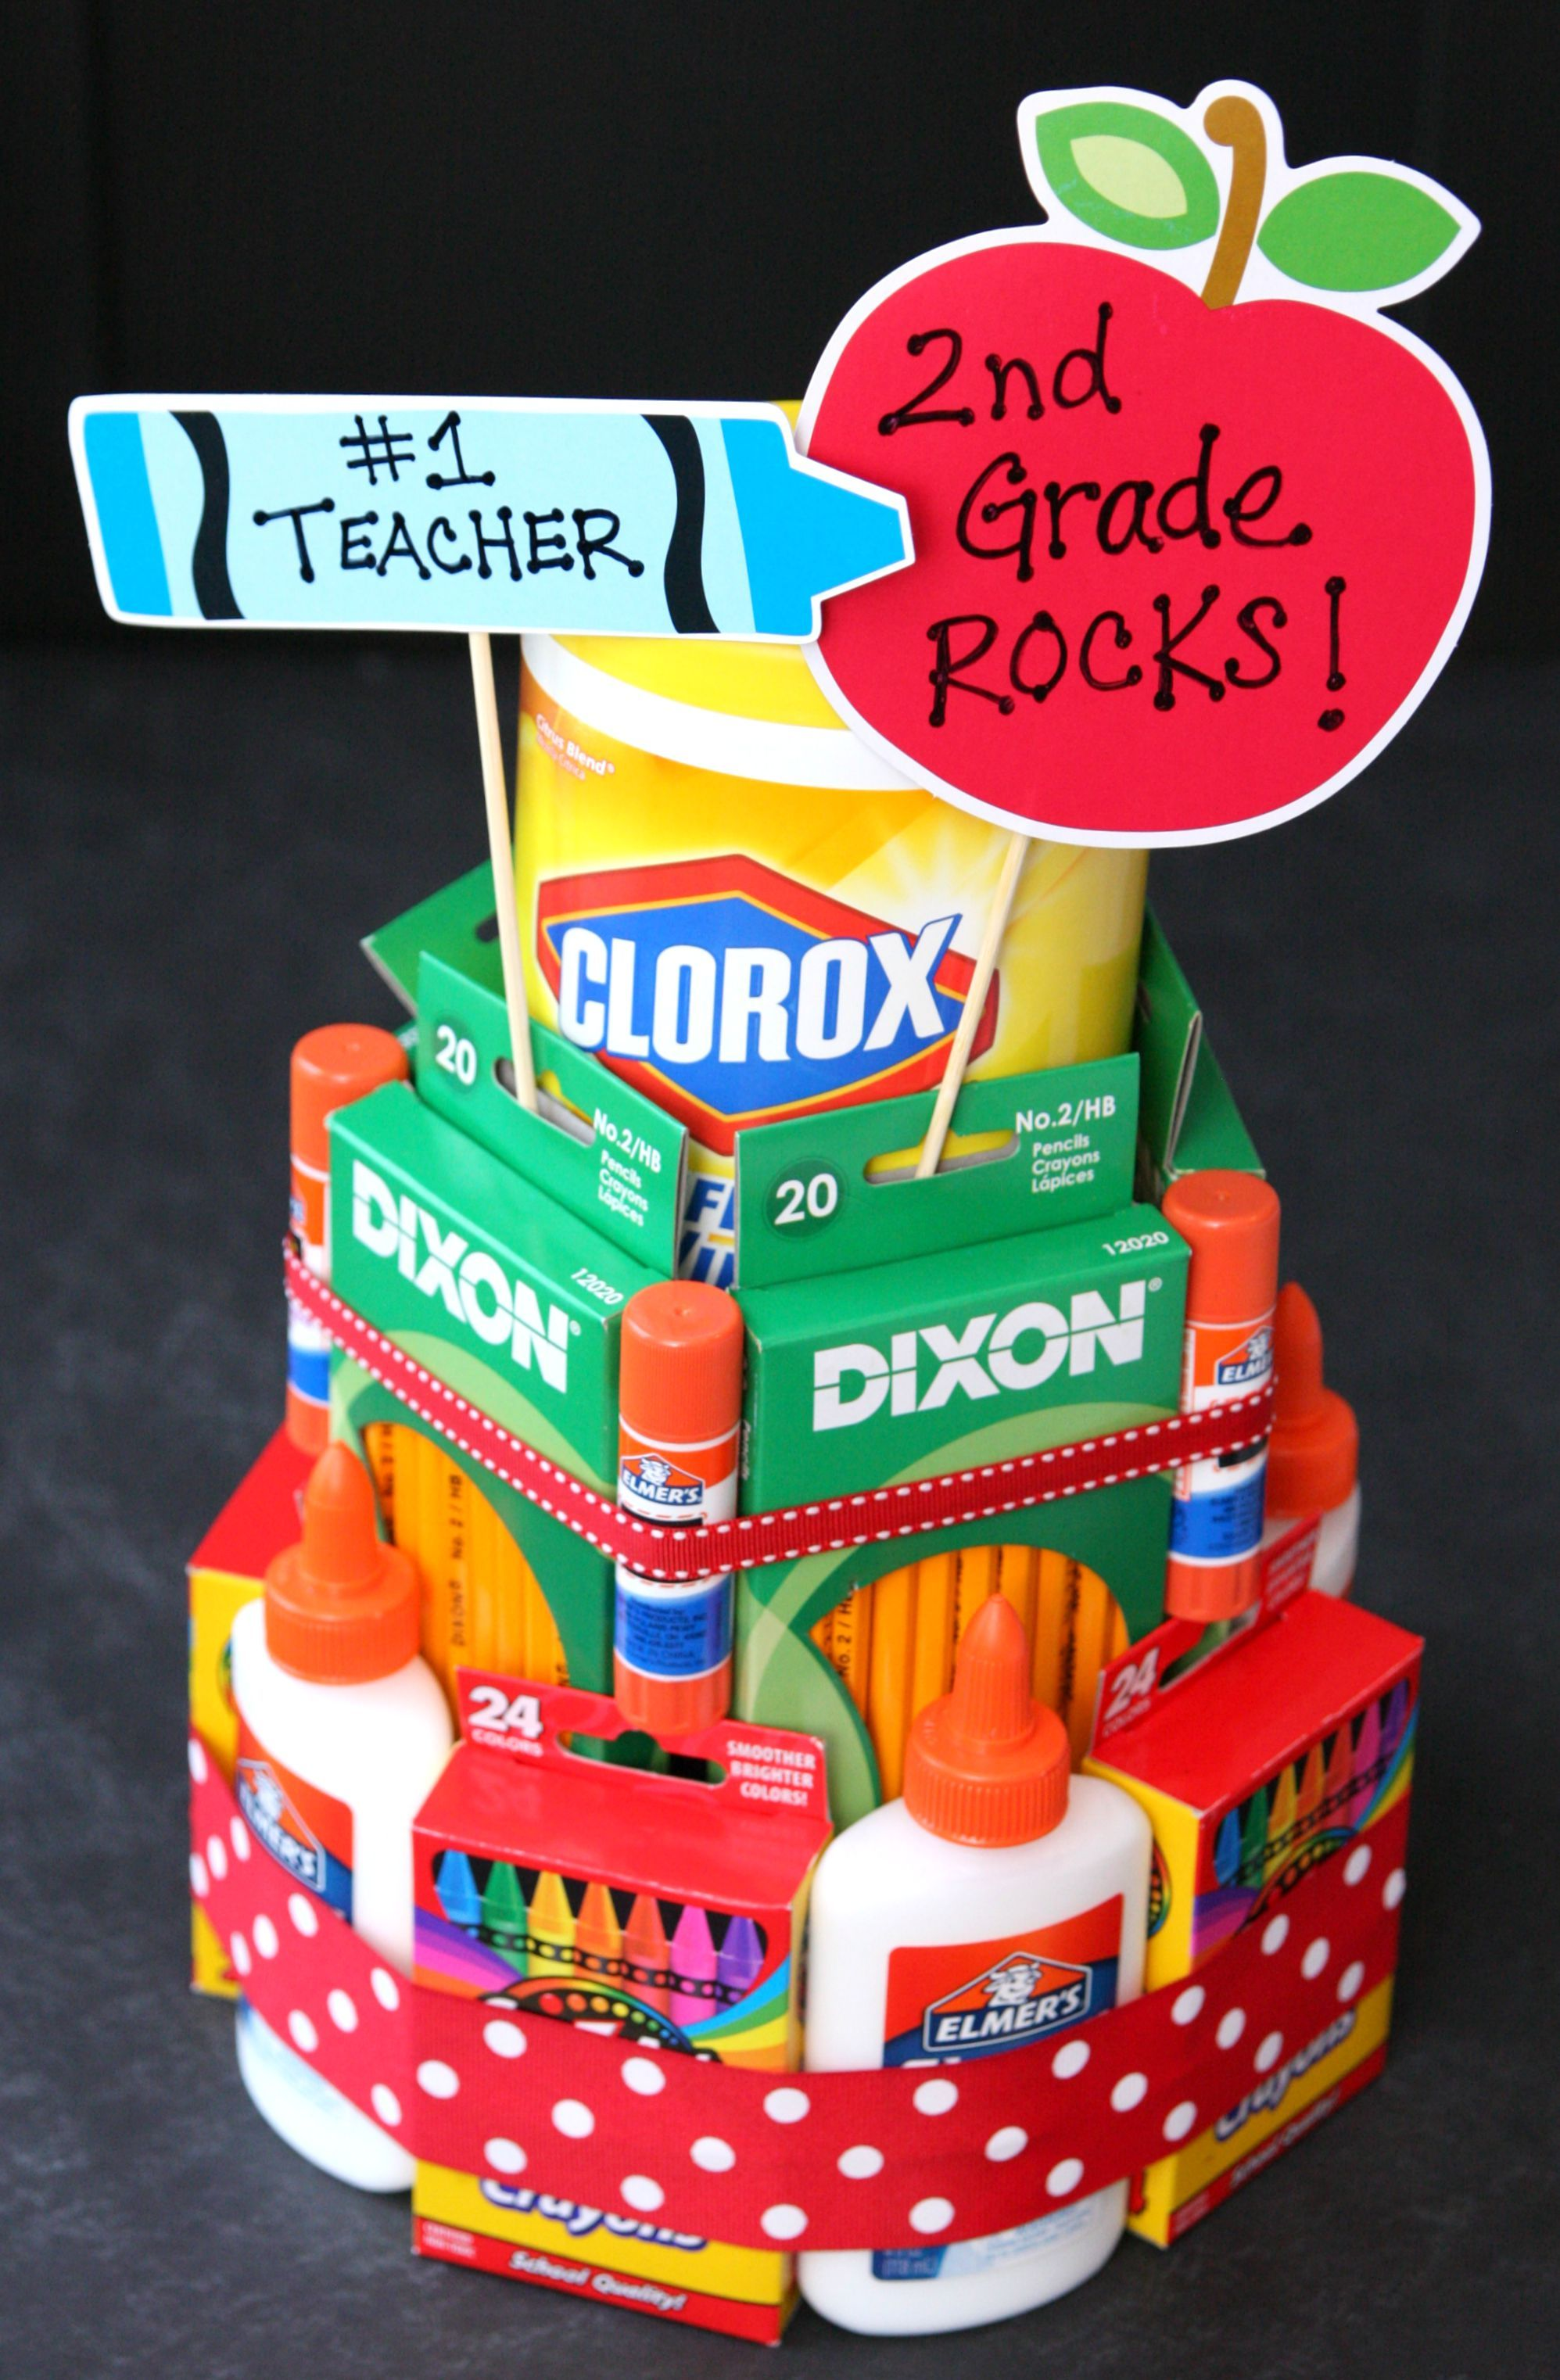 School Supply Cake | Teaching, Pandora and School supplies cake